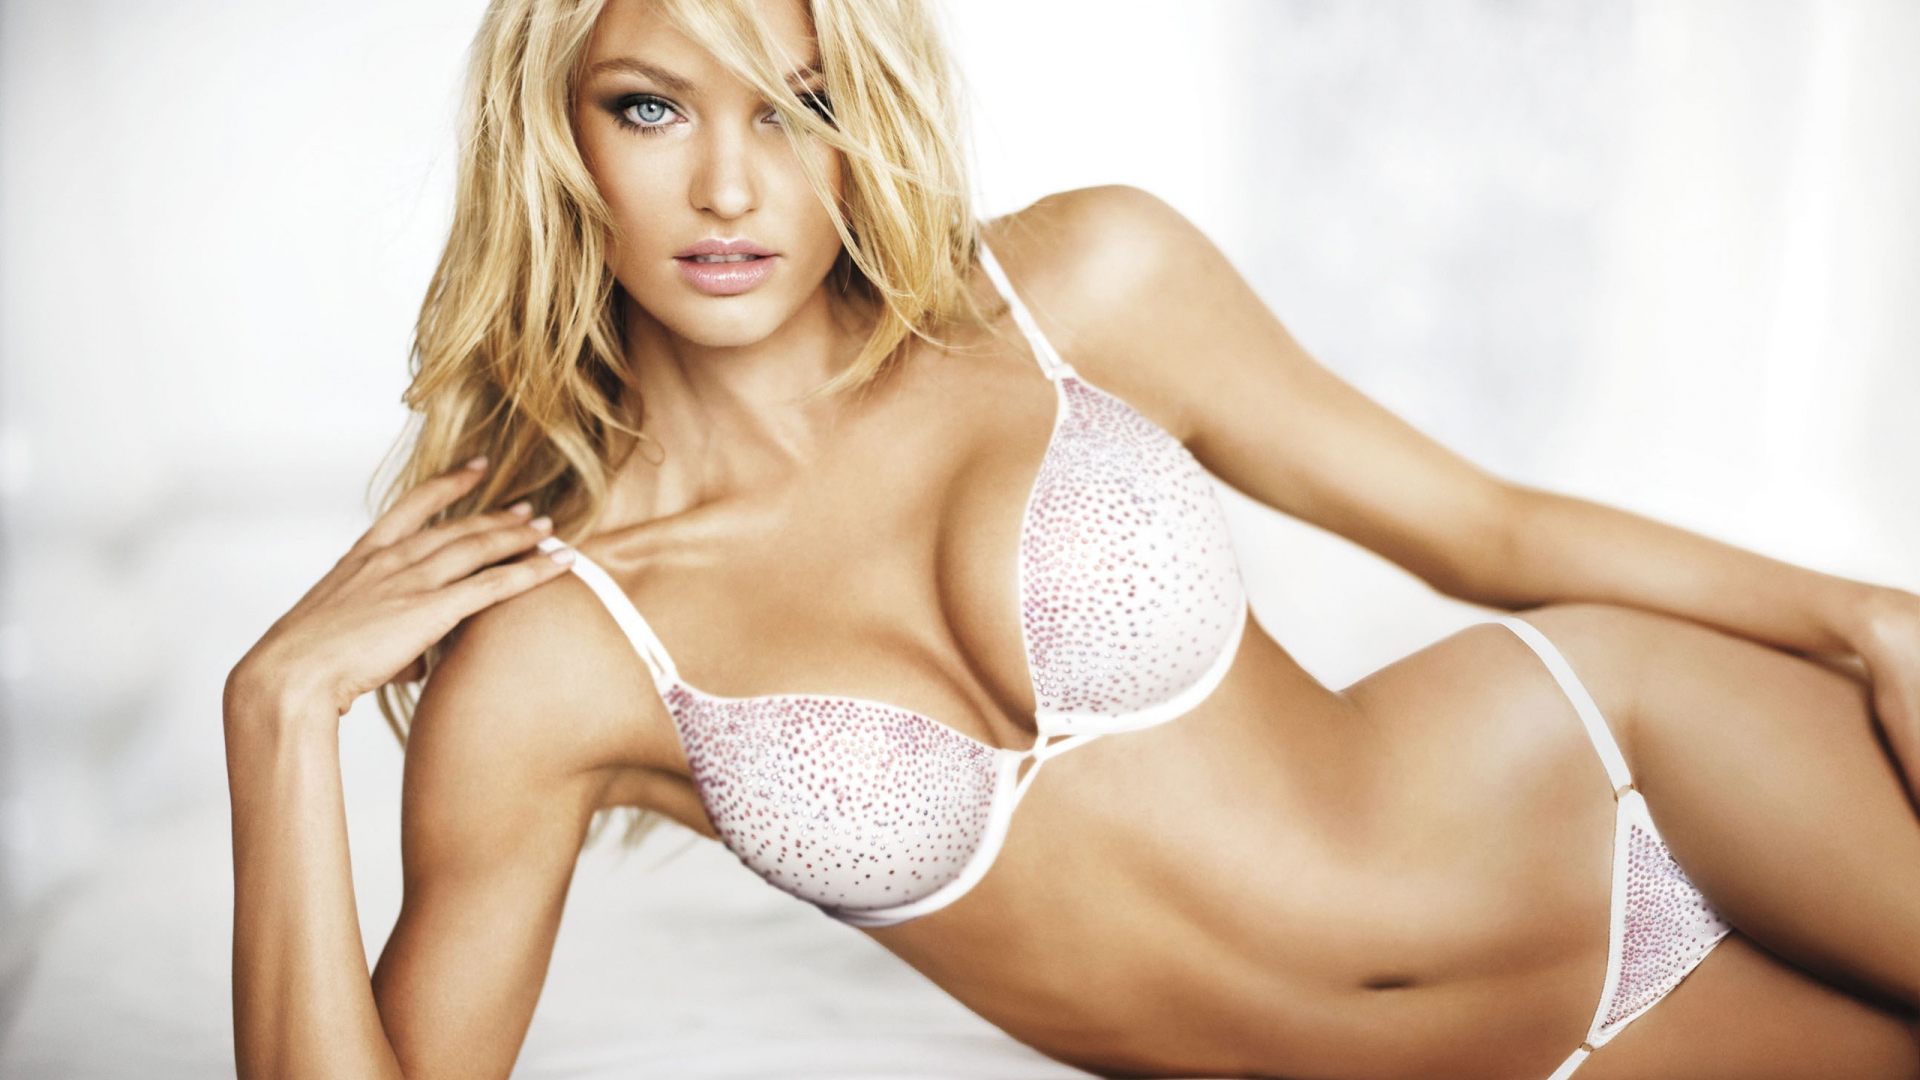 Candice Swanepoel Wallpaper For Laptop